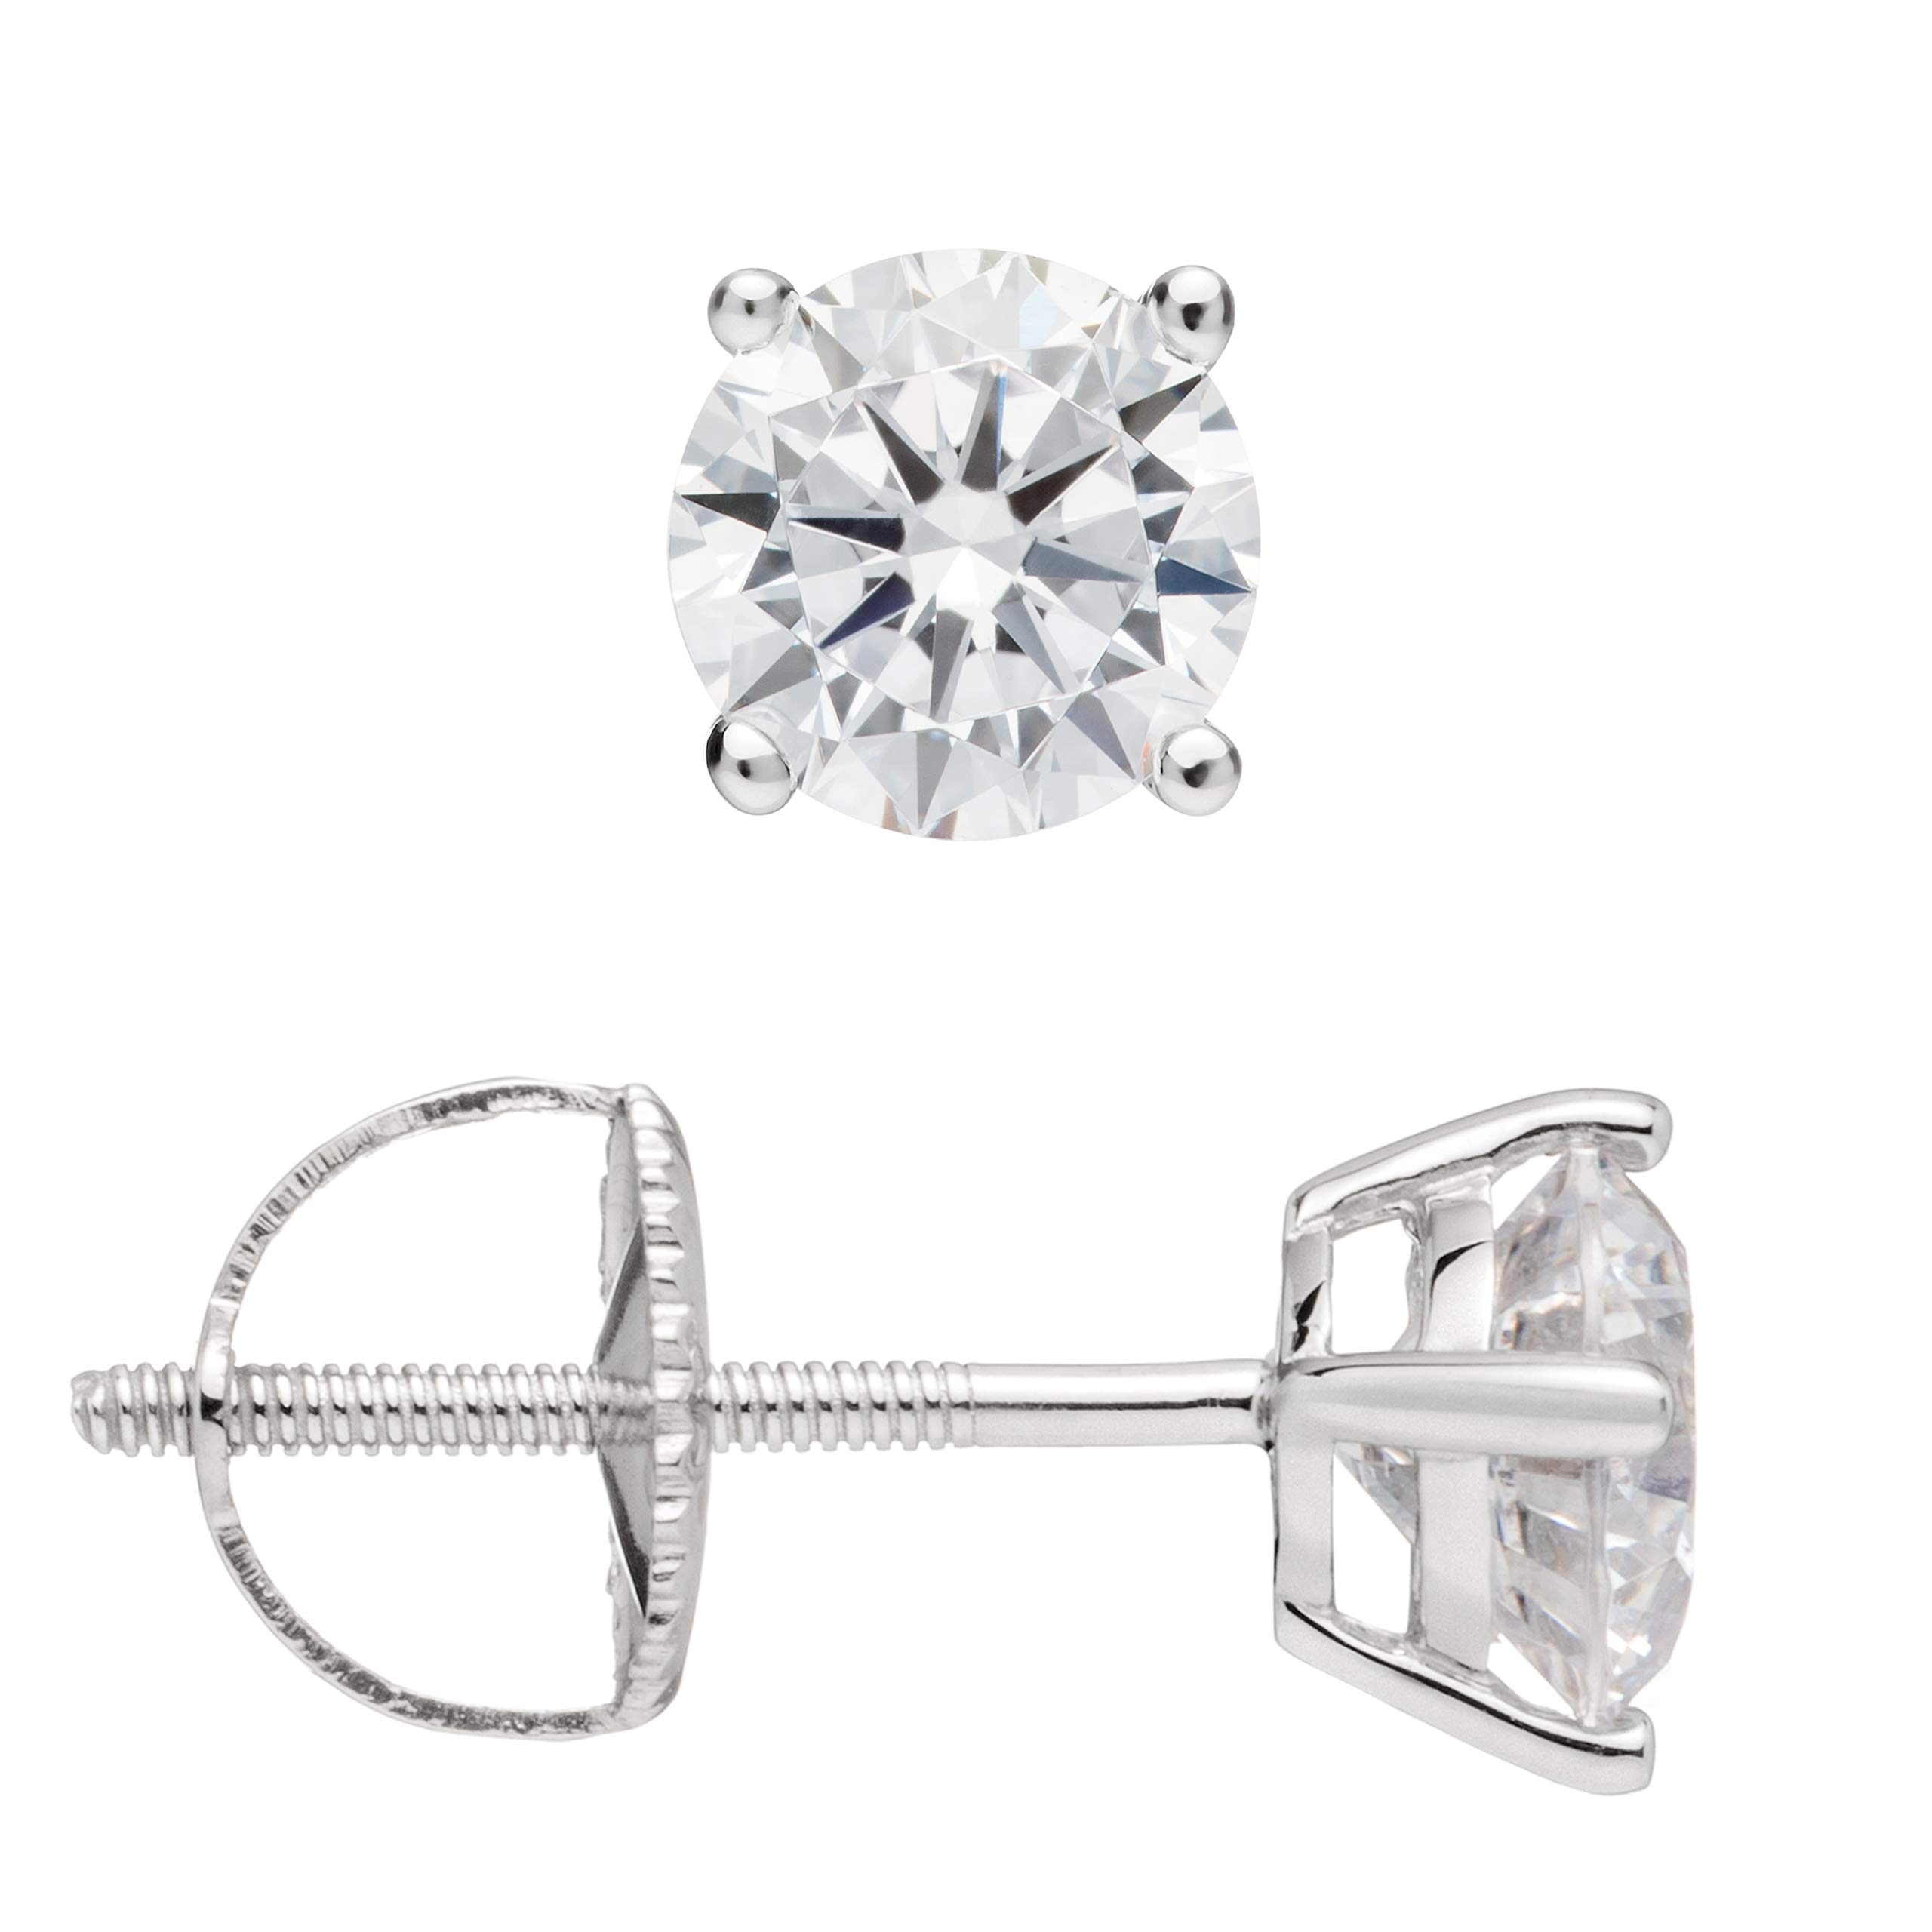 Everyday Elegance | 14K Solid White Gold Round Cut Cubic Zirconia Stud Earrings | 1.0 ctw | Screw Back Posts | With Gift Box